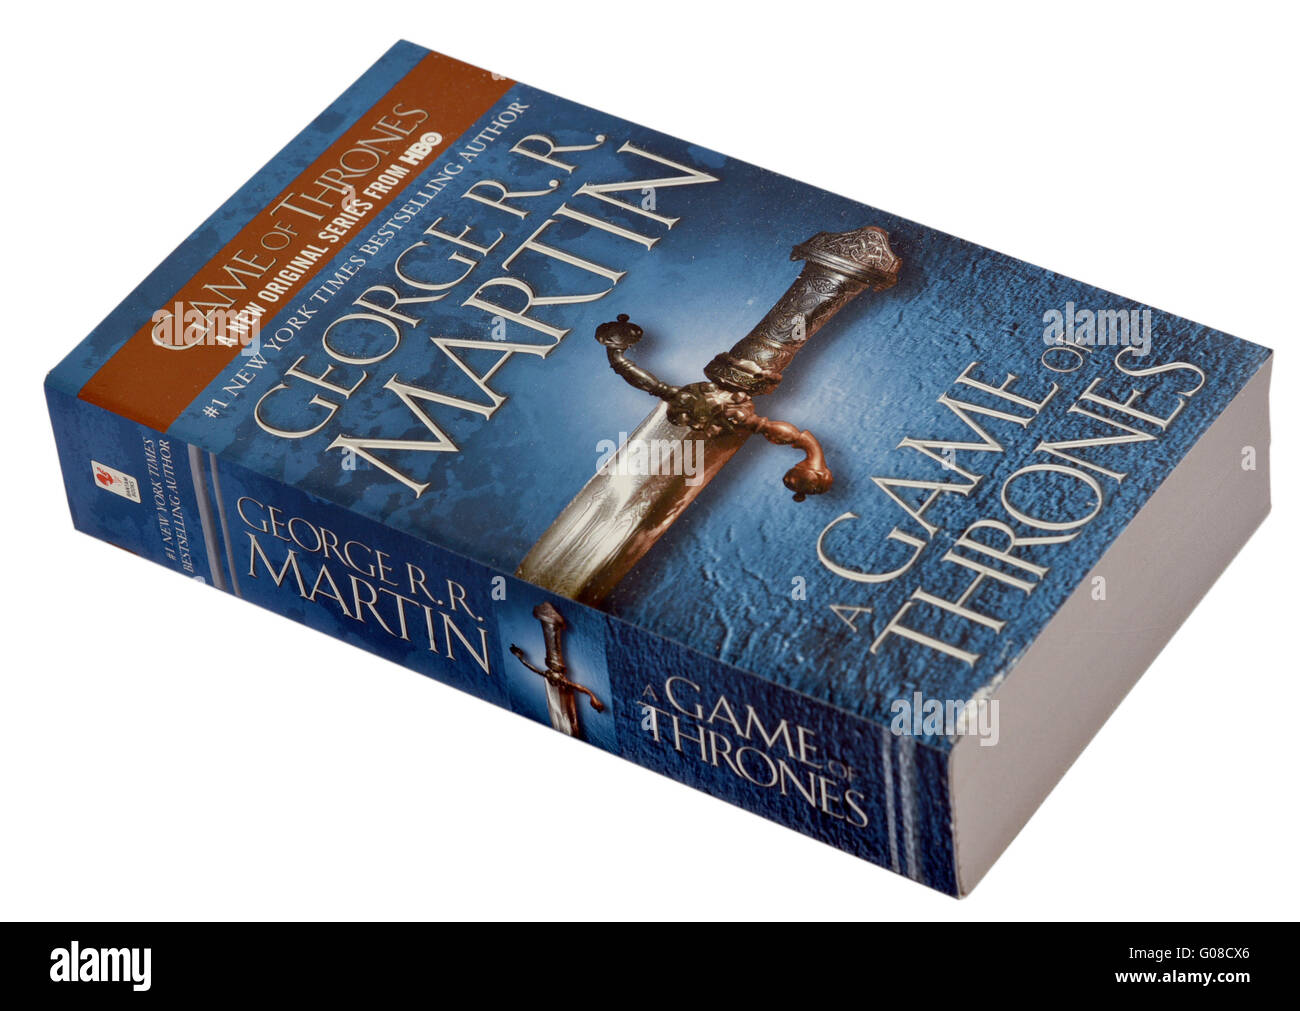 A Game of Thrones Book 1 of A Song of Ice and Fire by George RR Martin - Stock Image